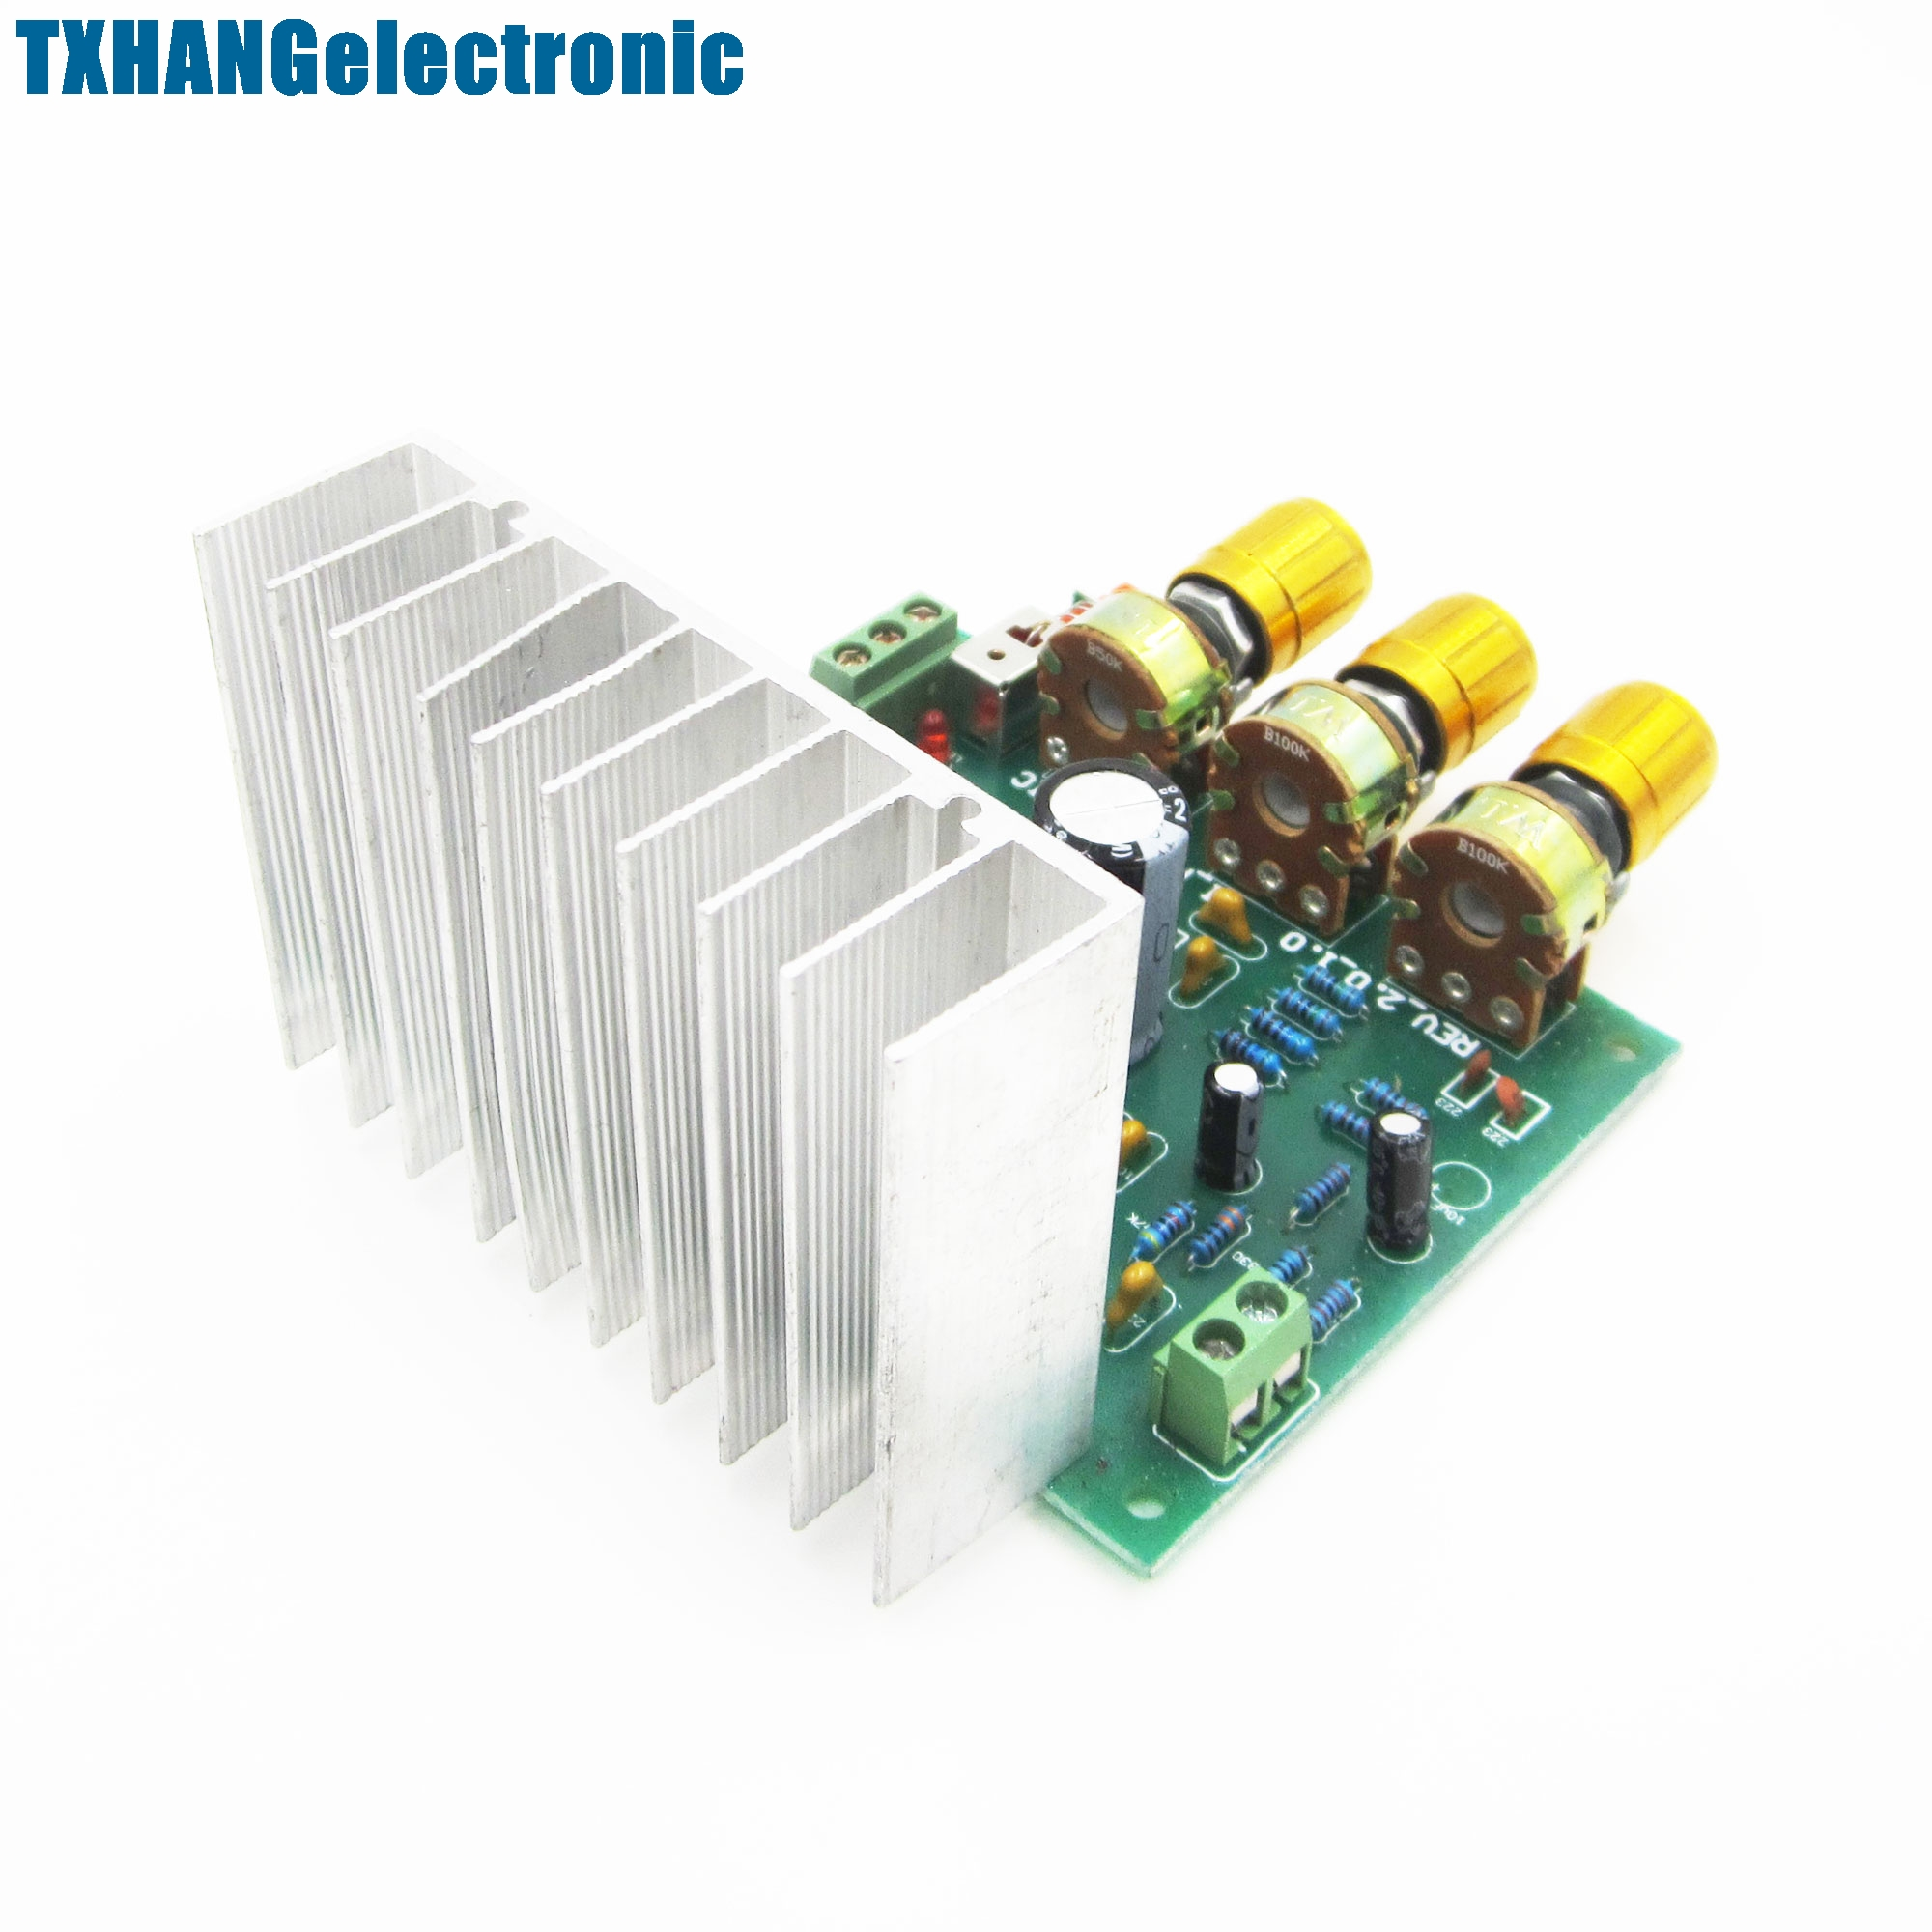 Tda2030a Hi Fi 20 Dual Channel 15w 15w2 Amplifier Board Hifi Audio Circuit Lm1875 Diy Compatible In Integrated Circuits From Electronic Components Supplies On